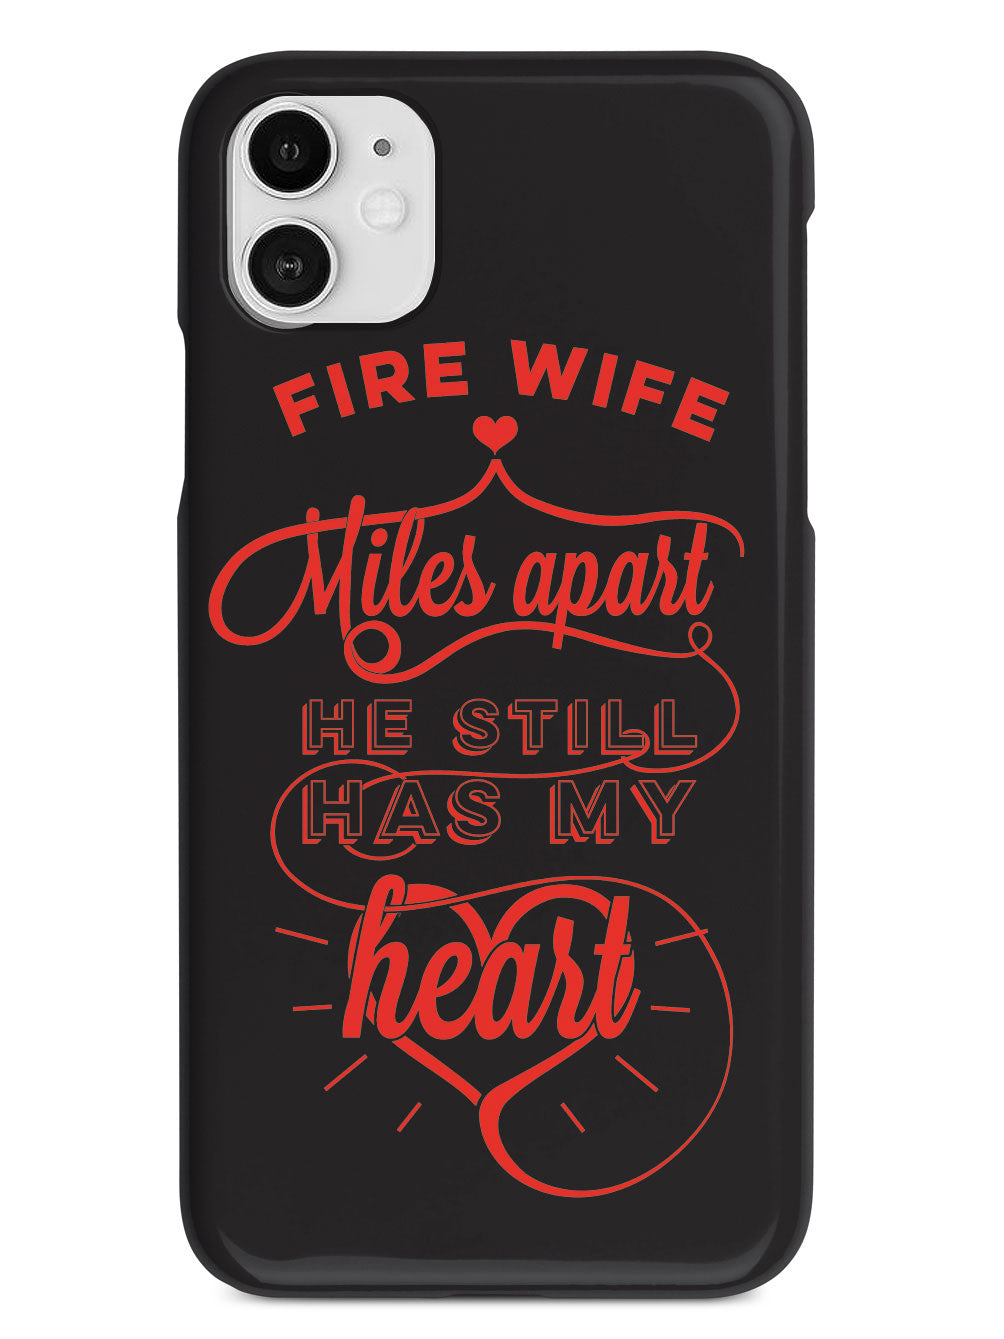 Fire Wife - Miles Apart, Still Has My Heart Case